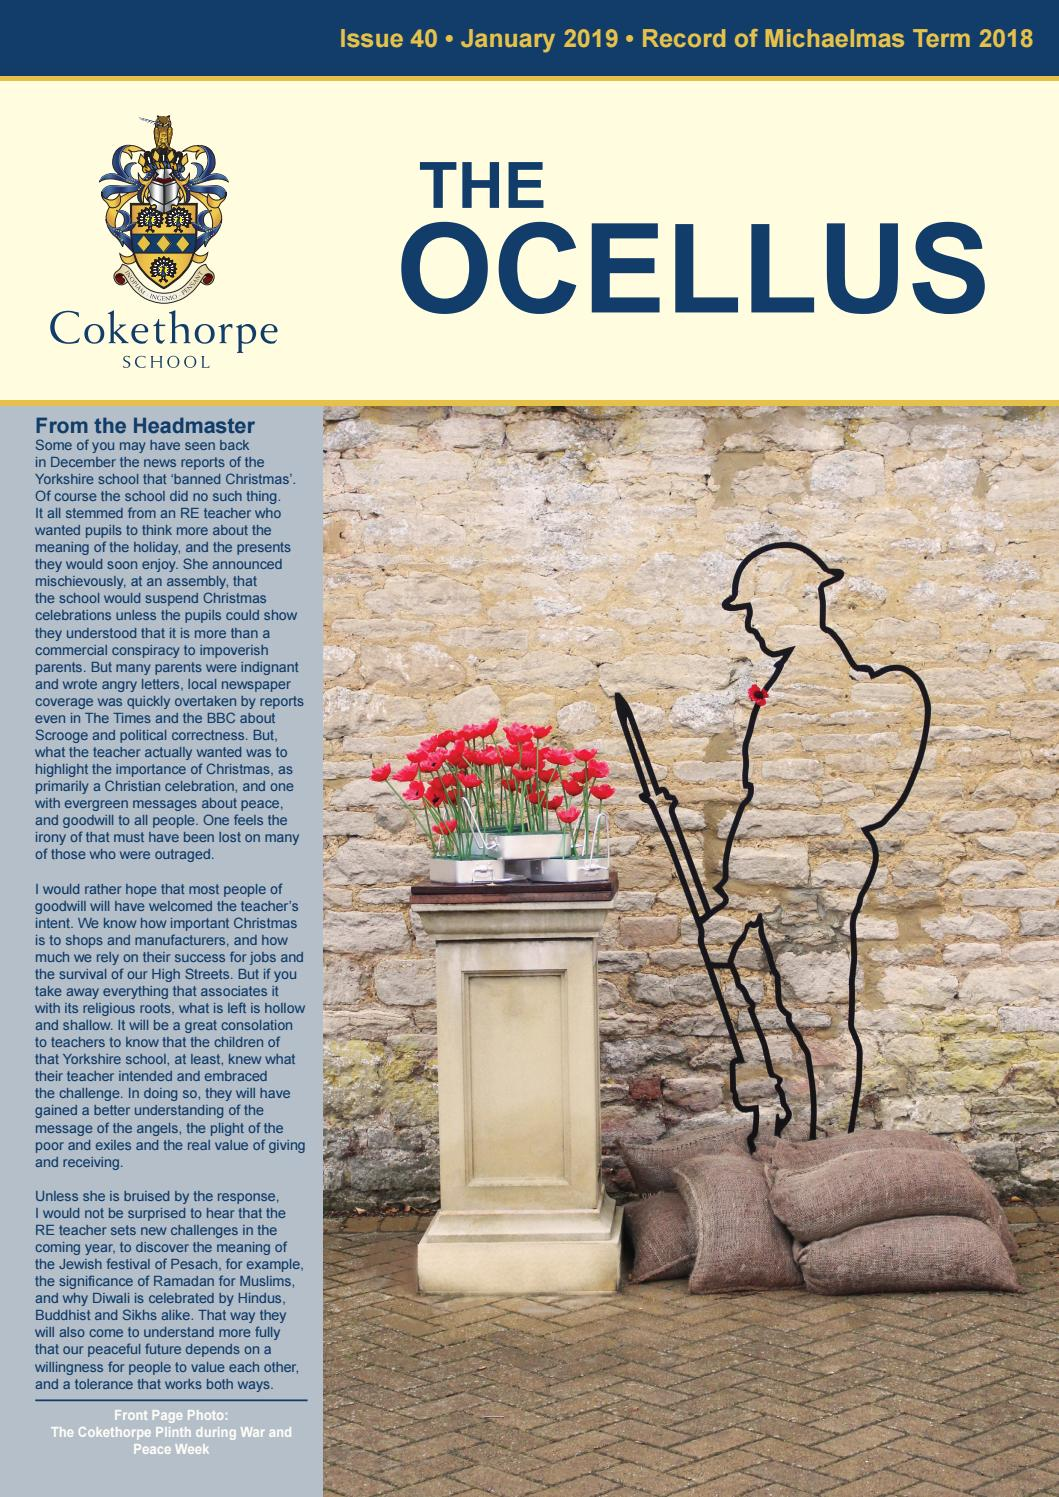 707631339f8 Ocellus Michaelmas Term 2018 by CokethorpeSch - issuu